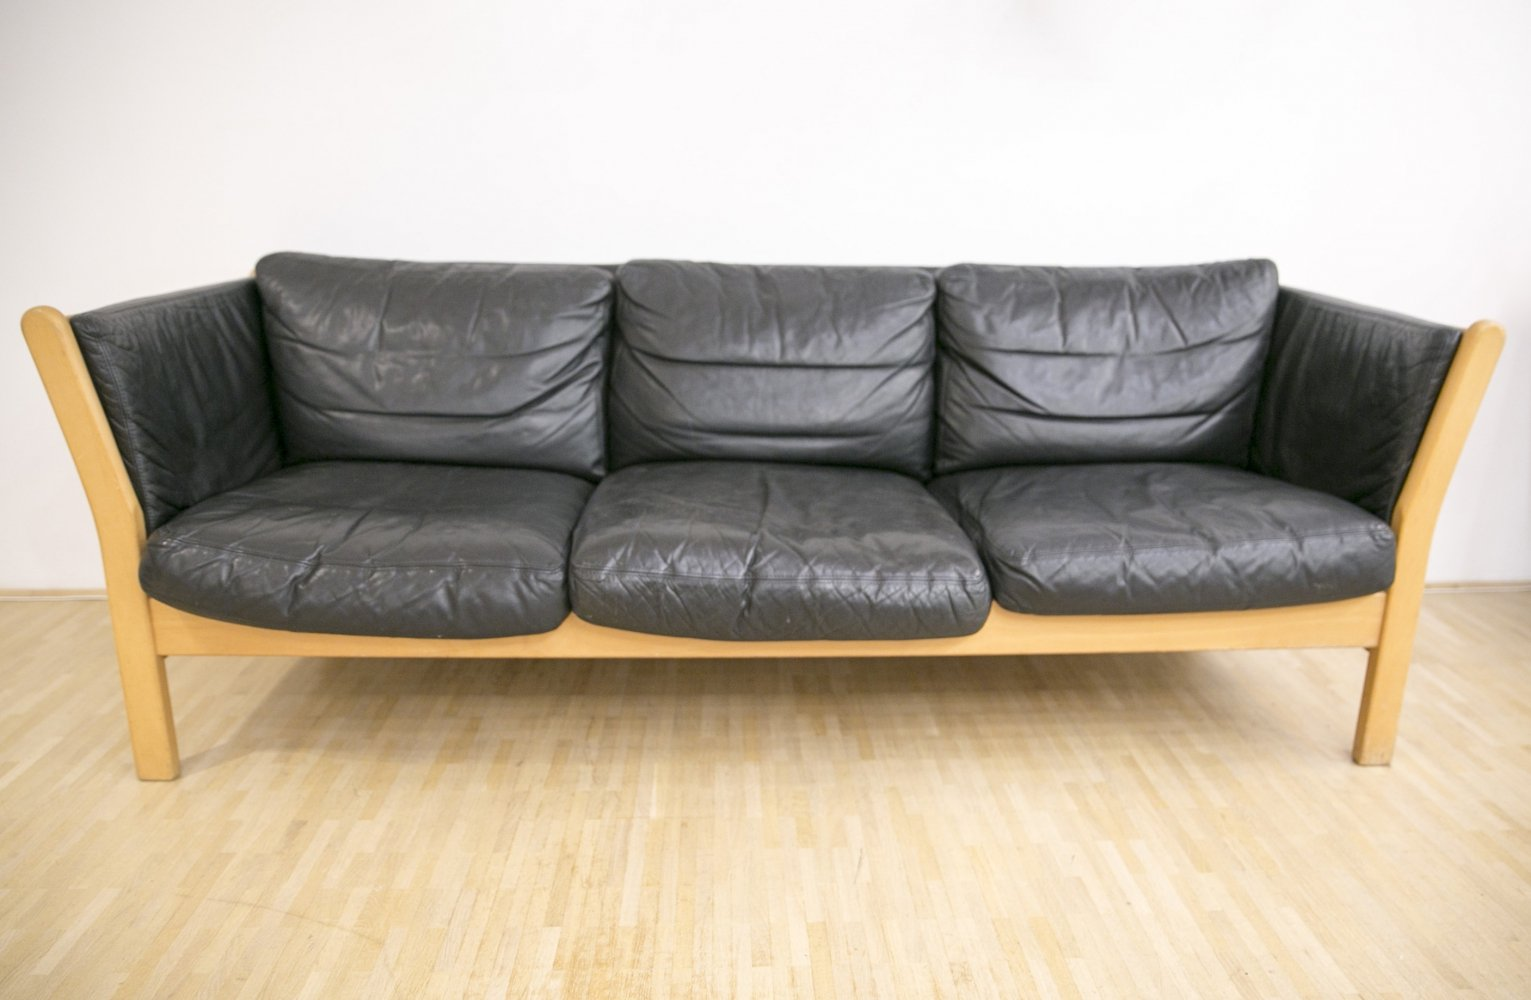 Three seater sofa in black patinated leather, Denmark 1970s